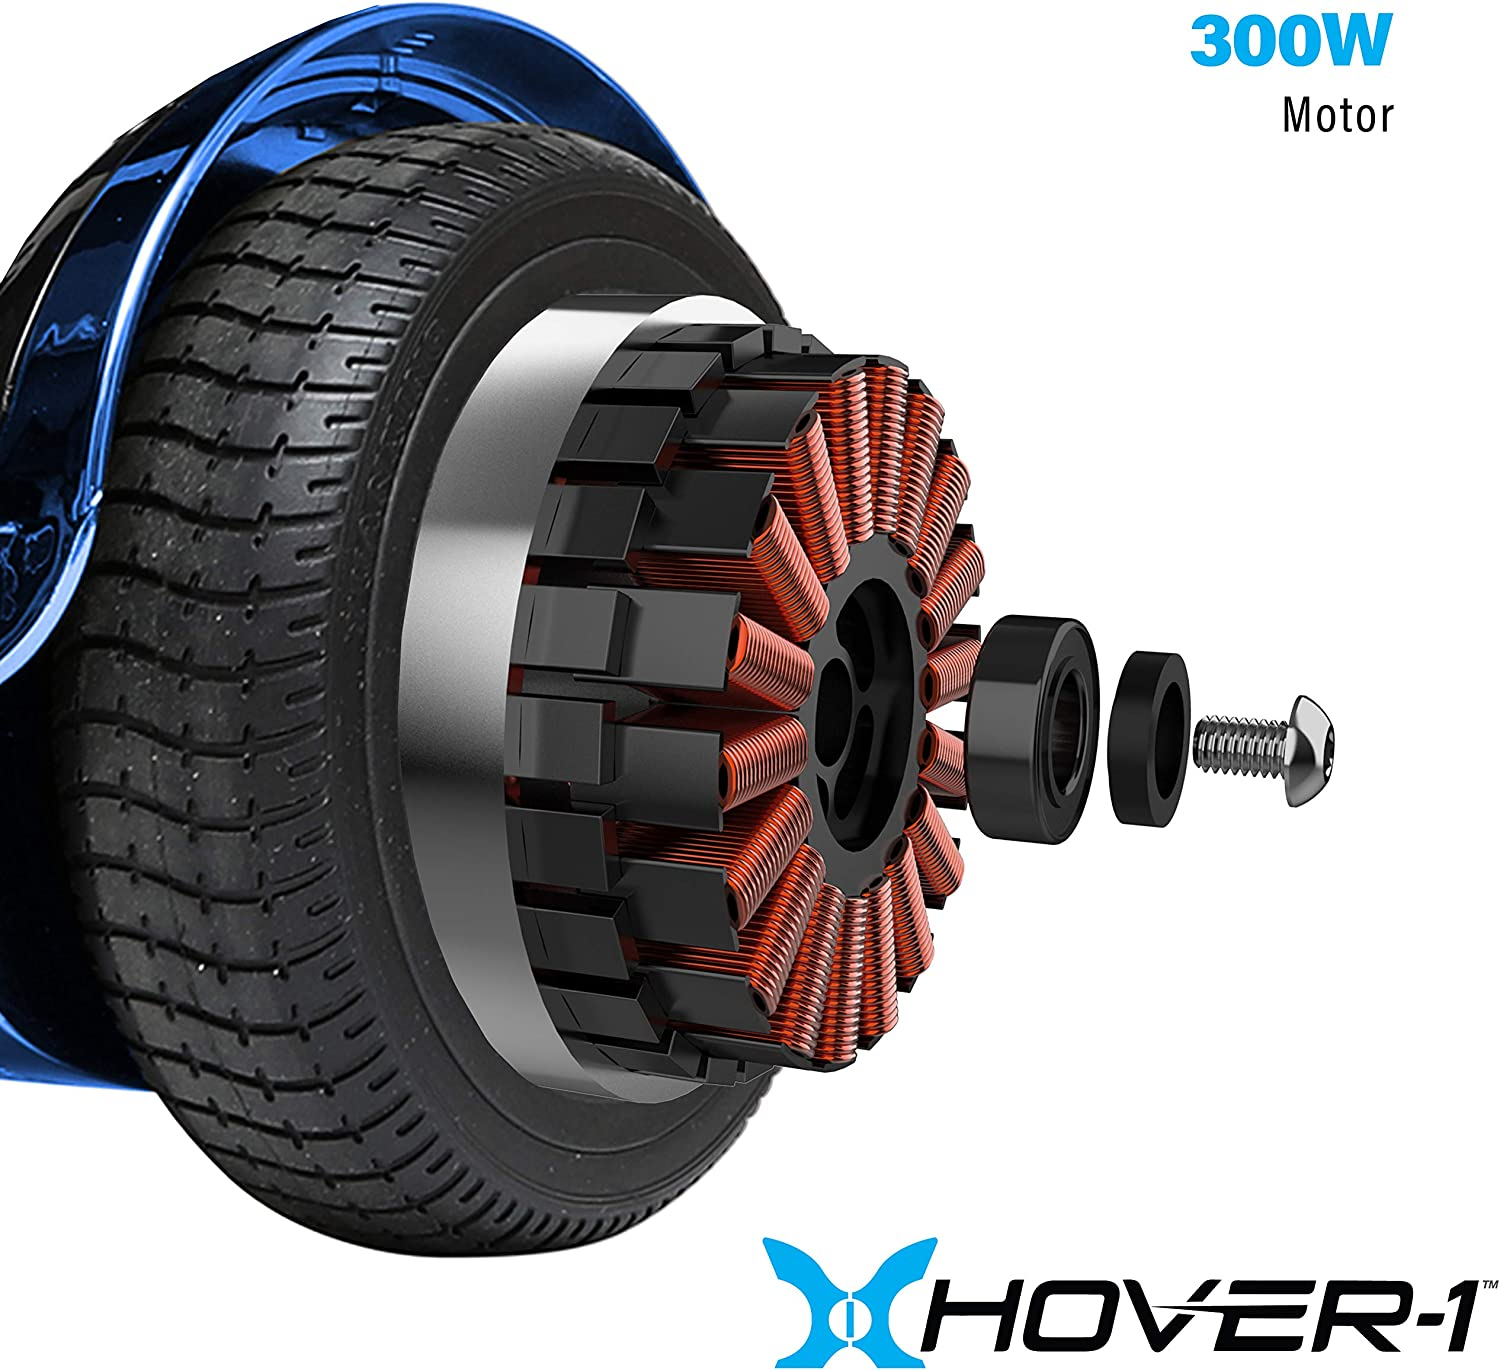 Hover-1 Chrome Electric Hoverboard Scooter Blue - 2